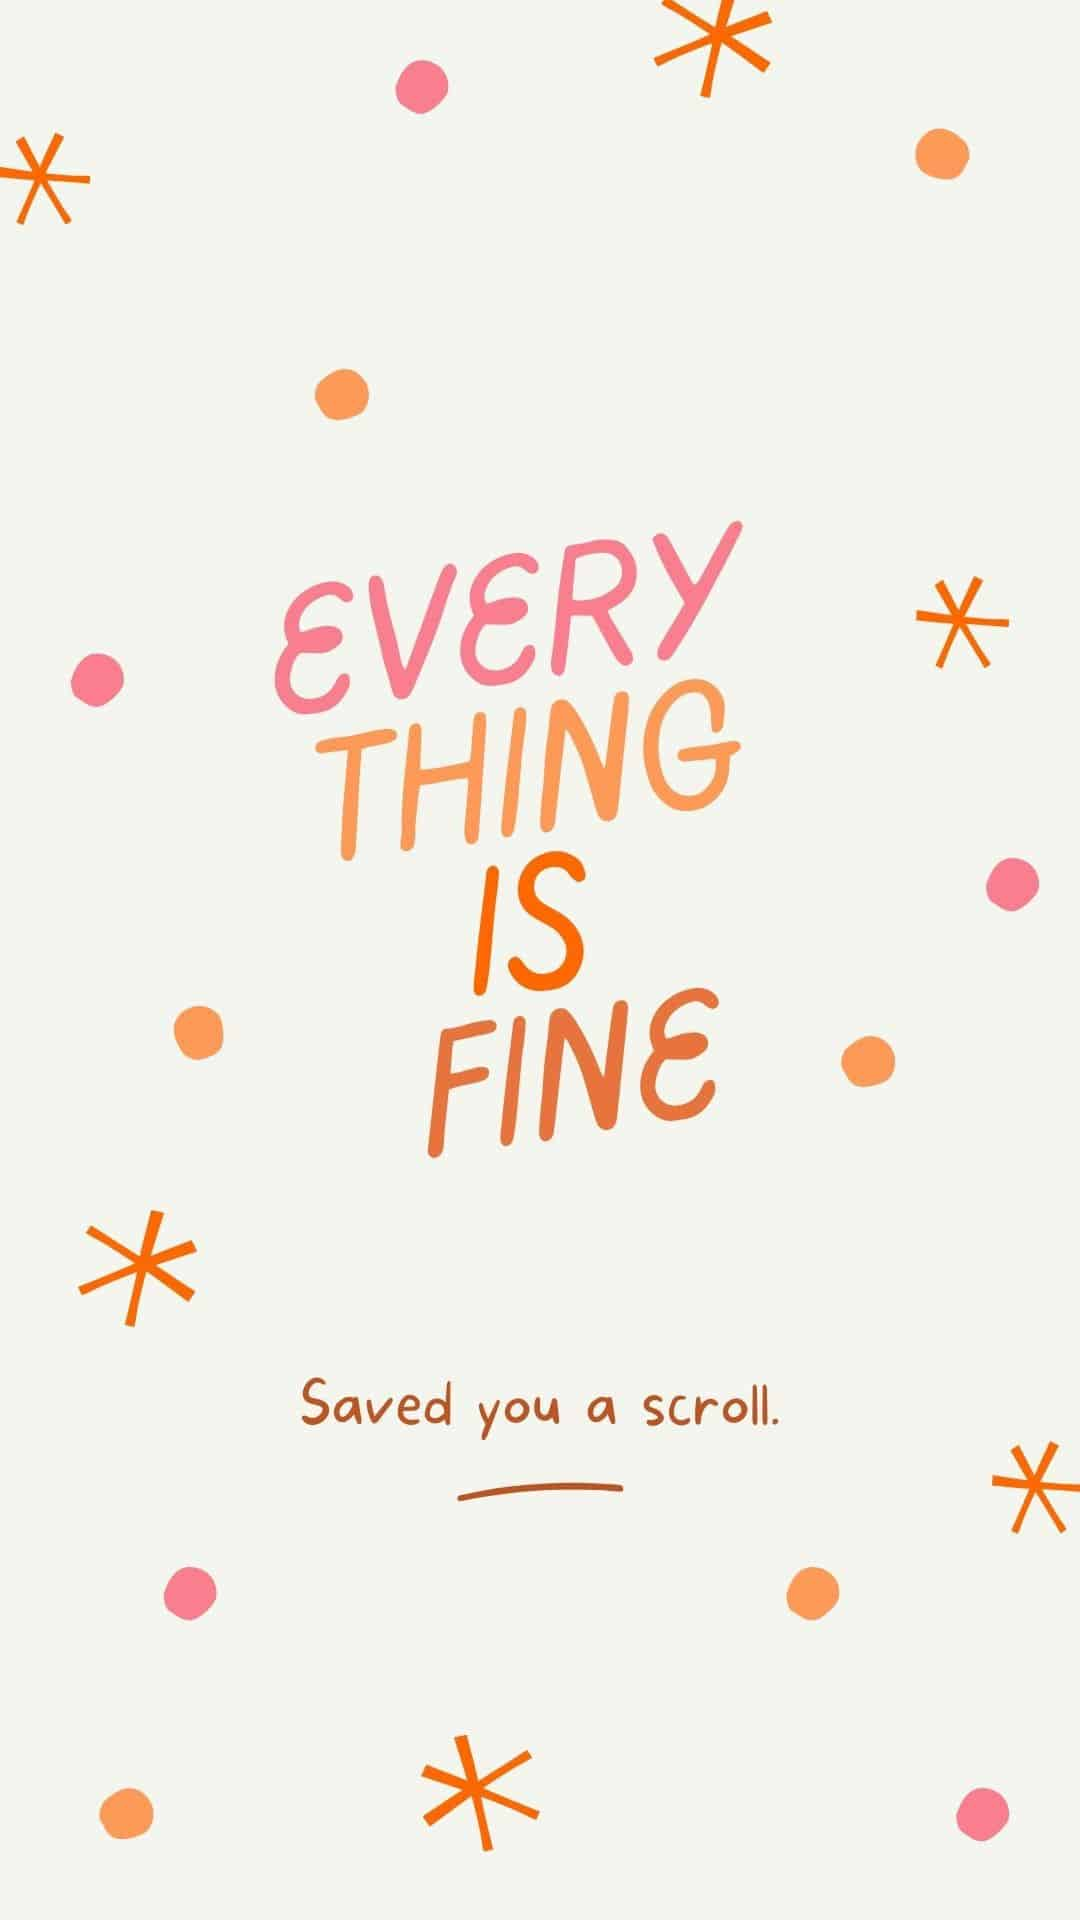 Cute Wallpapers for Girls, everything is fine with cream background